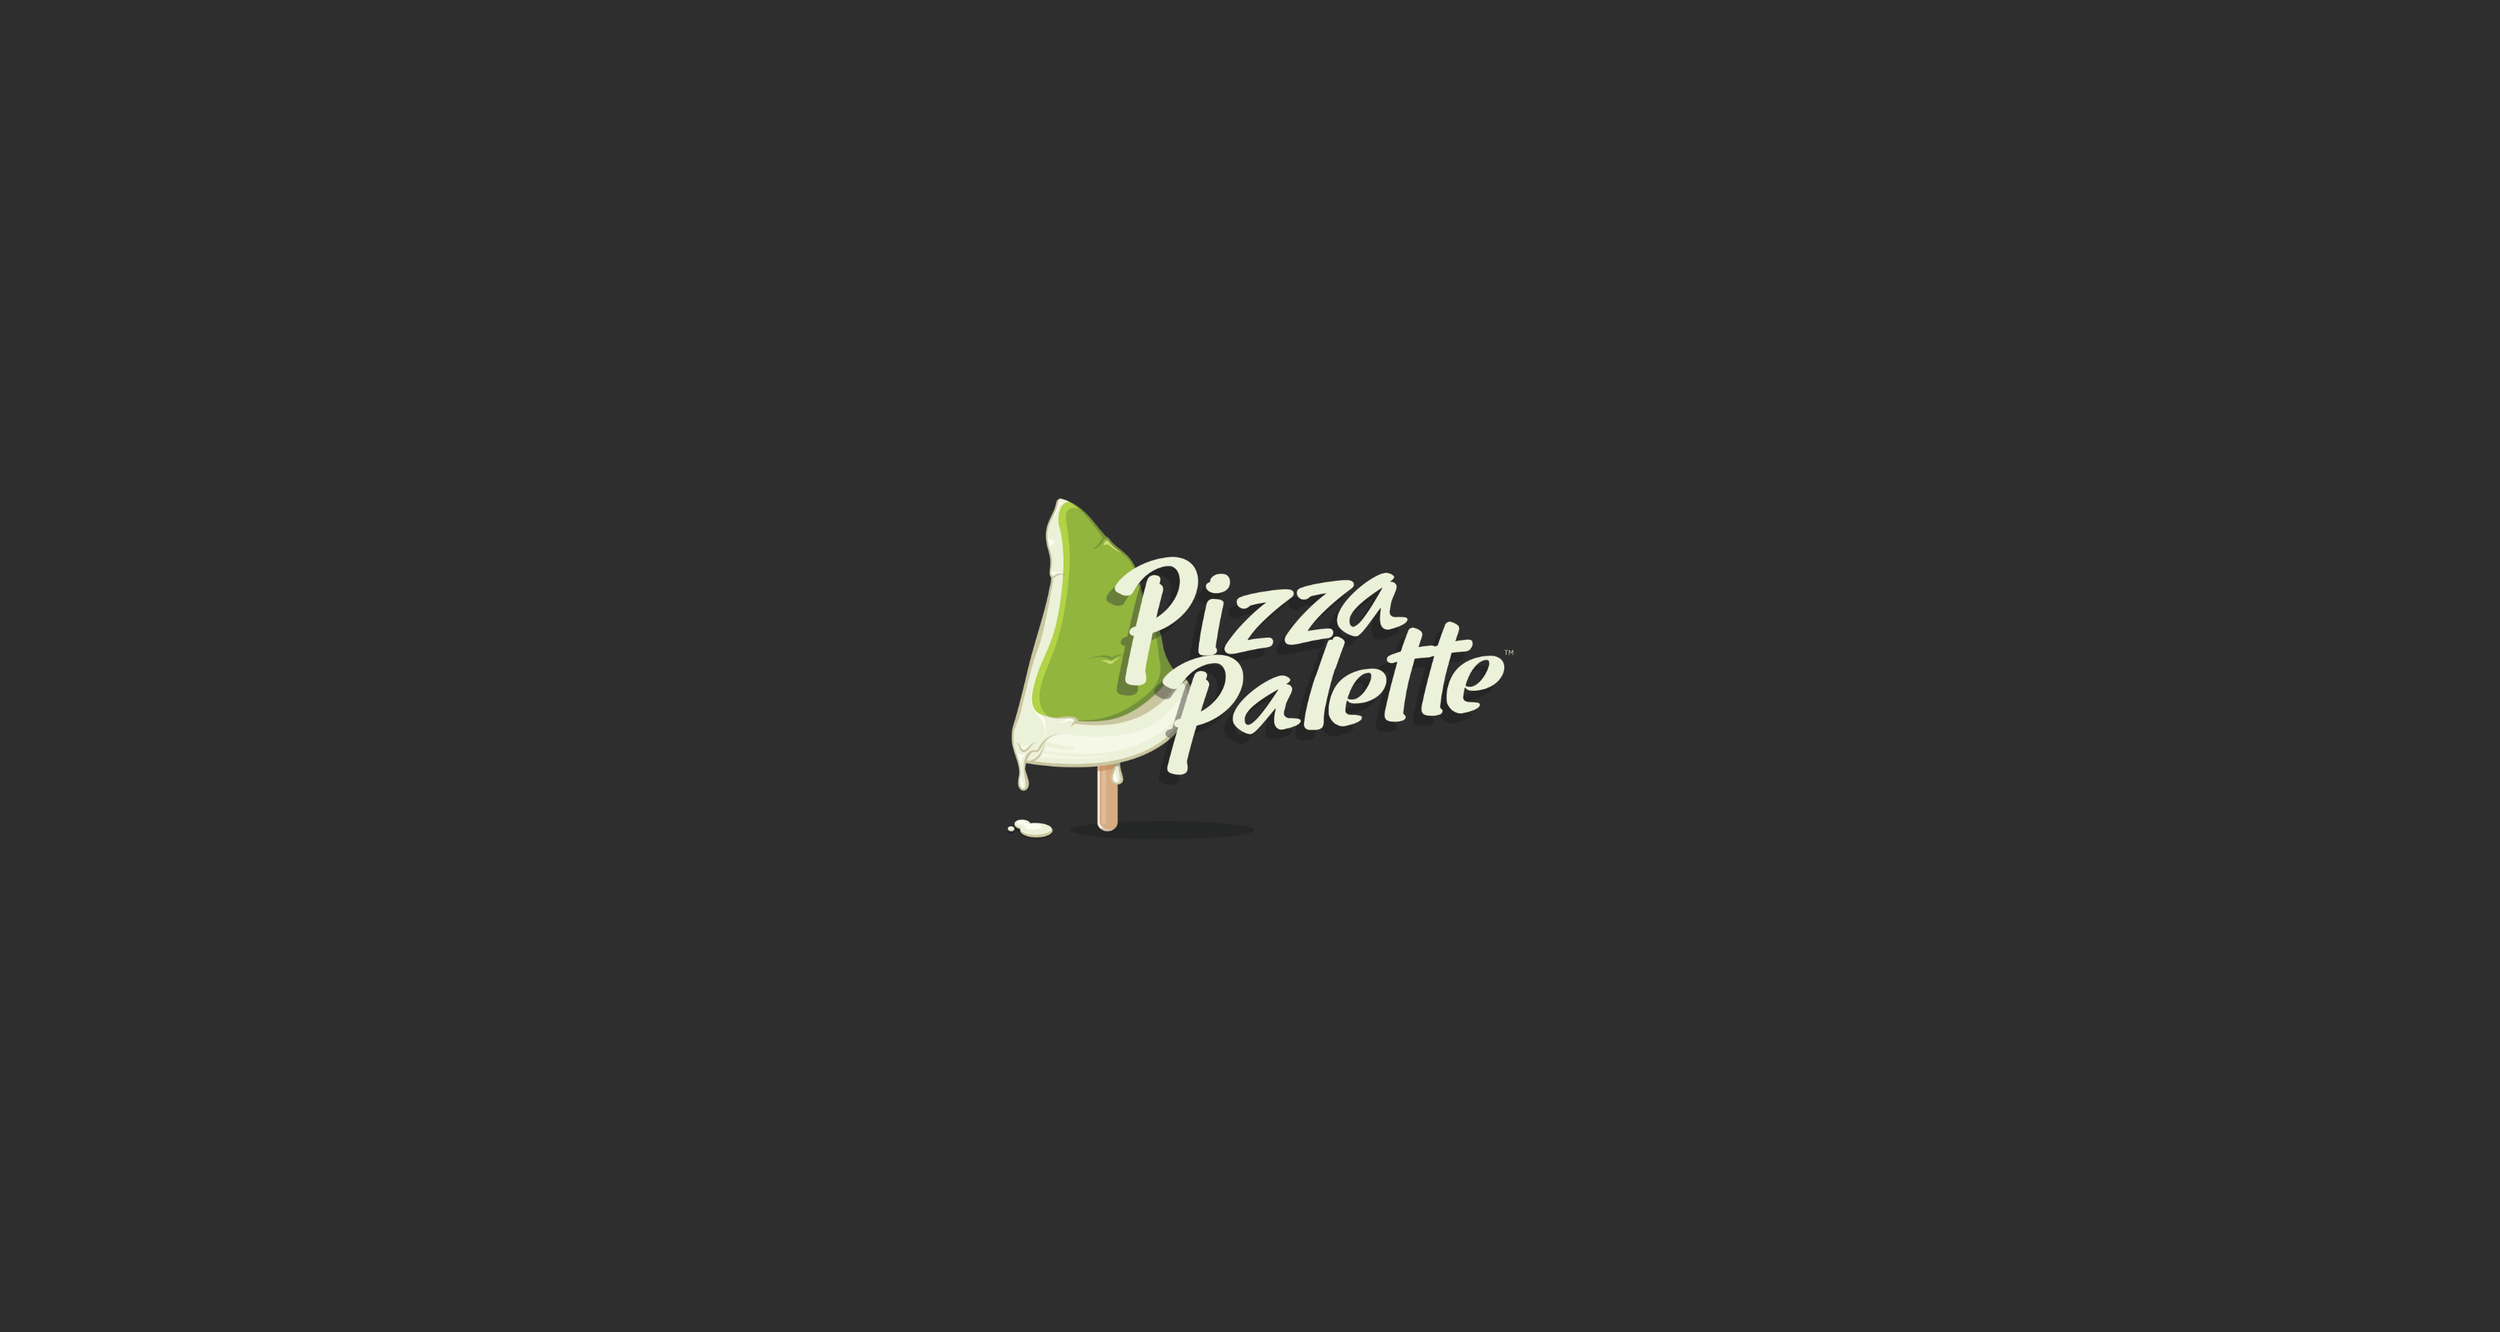 pizzapallete-wallpaper.jpg